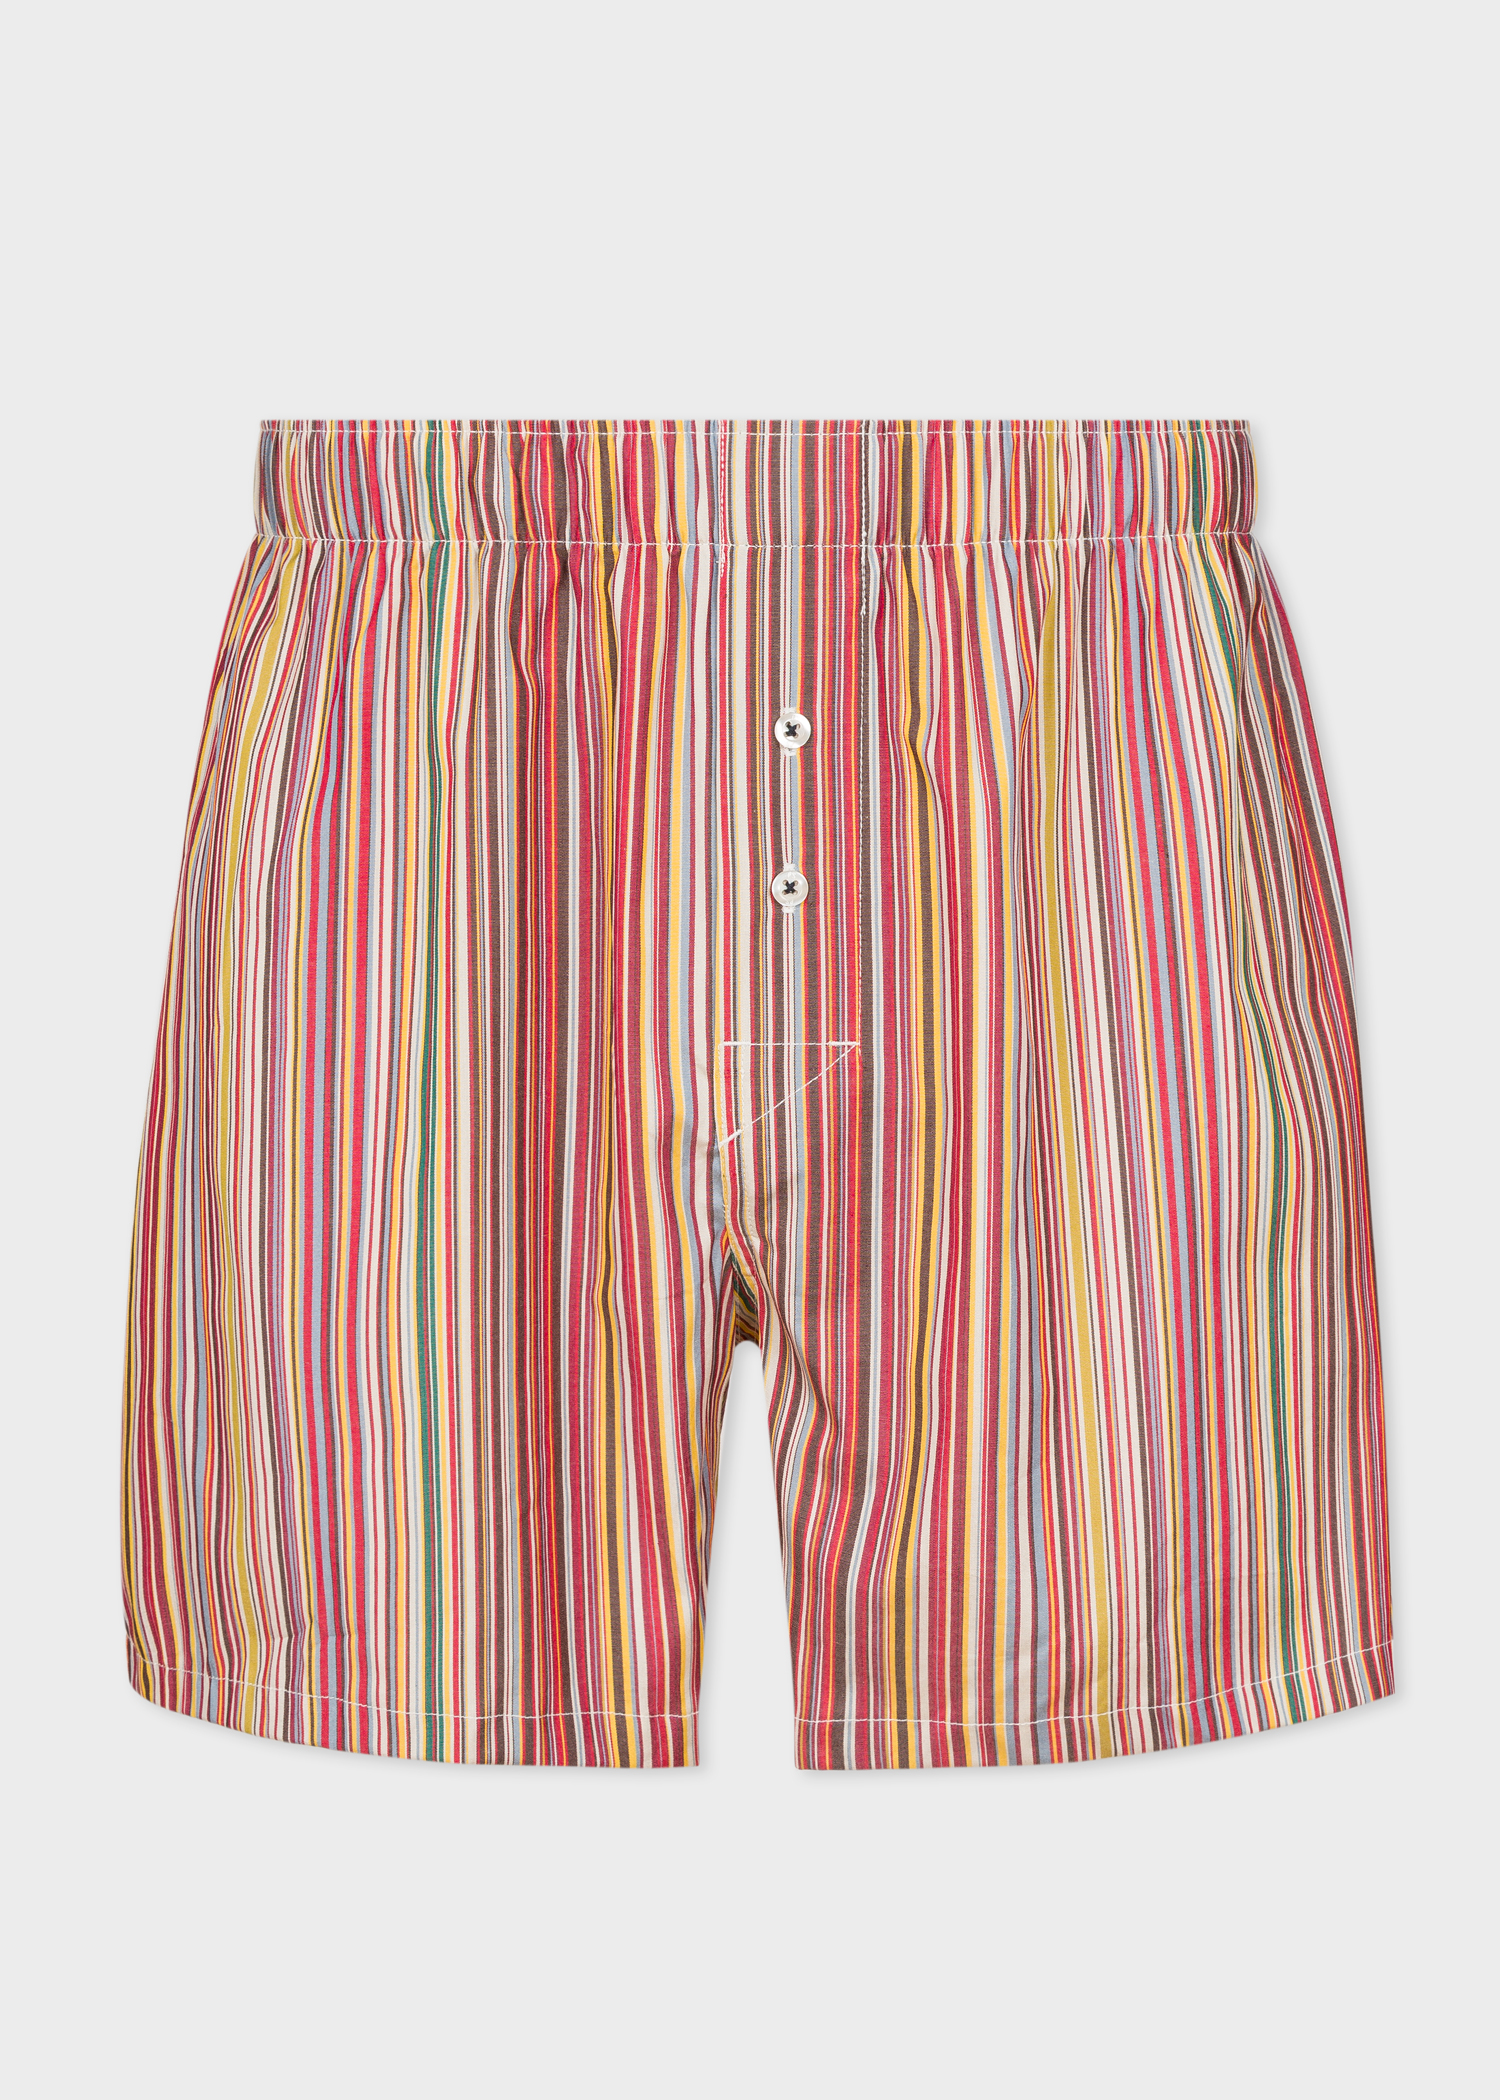 562e8e3350b7 Men's 'Signature Stripe' Cotton Boxer Shorts by Paul Smith